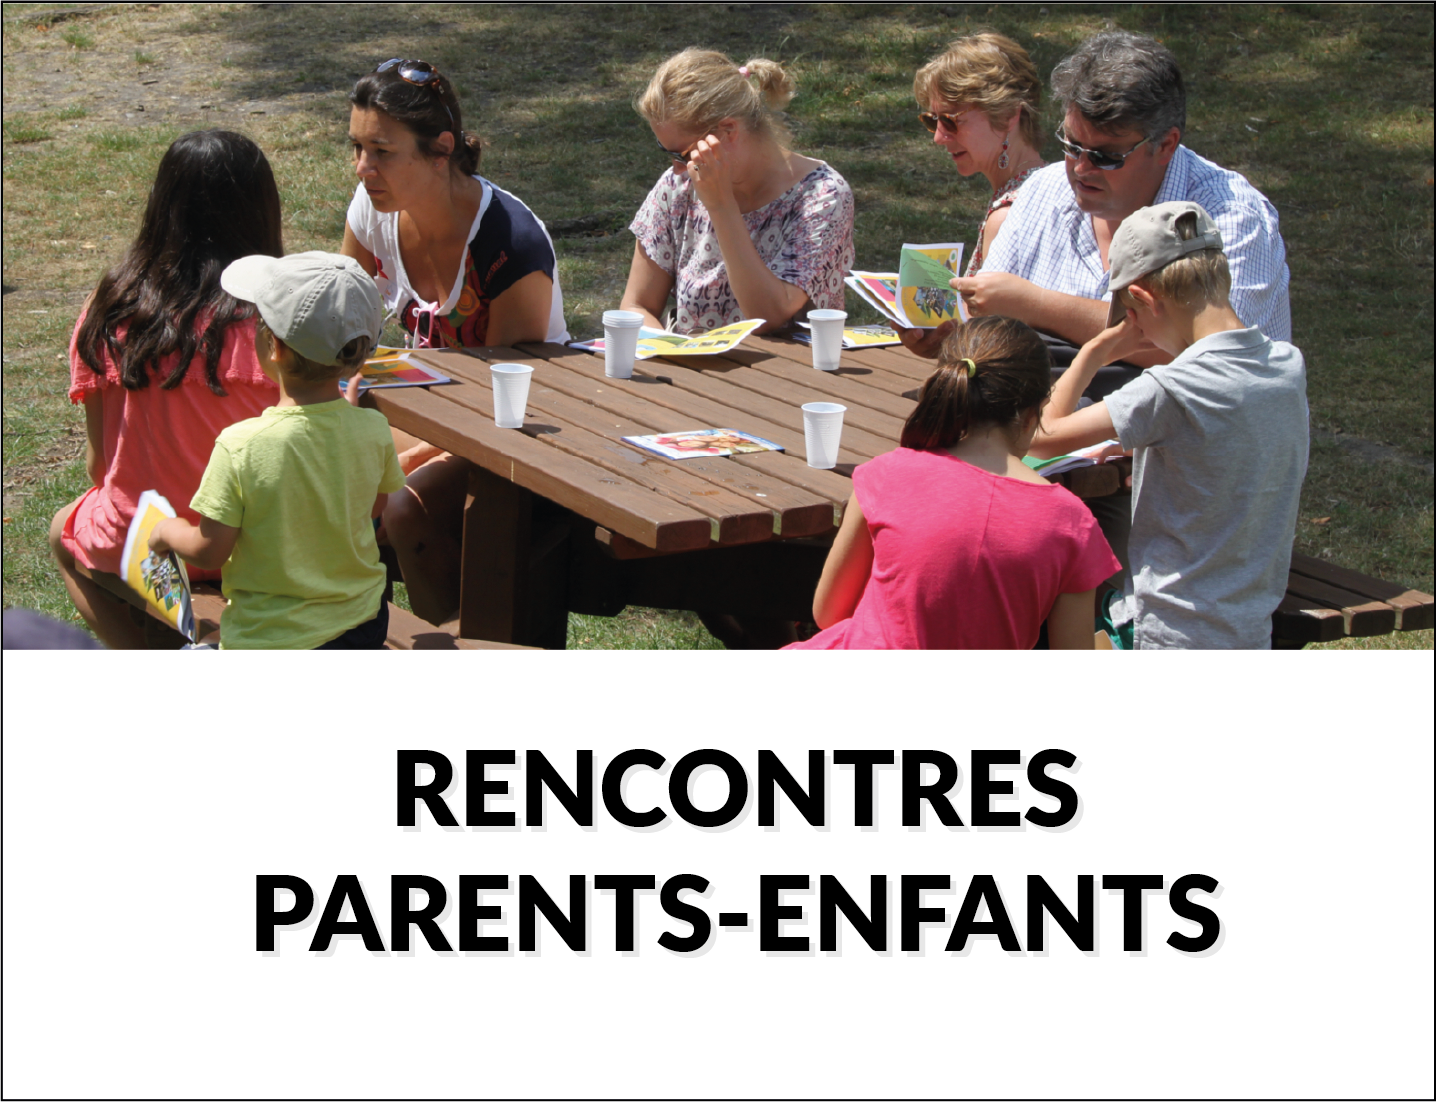 Rencontres parents-enfants